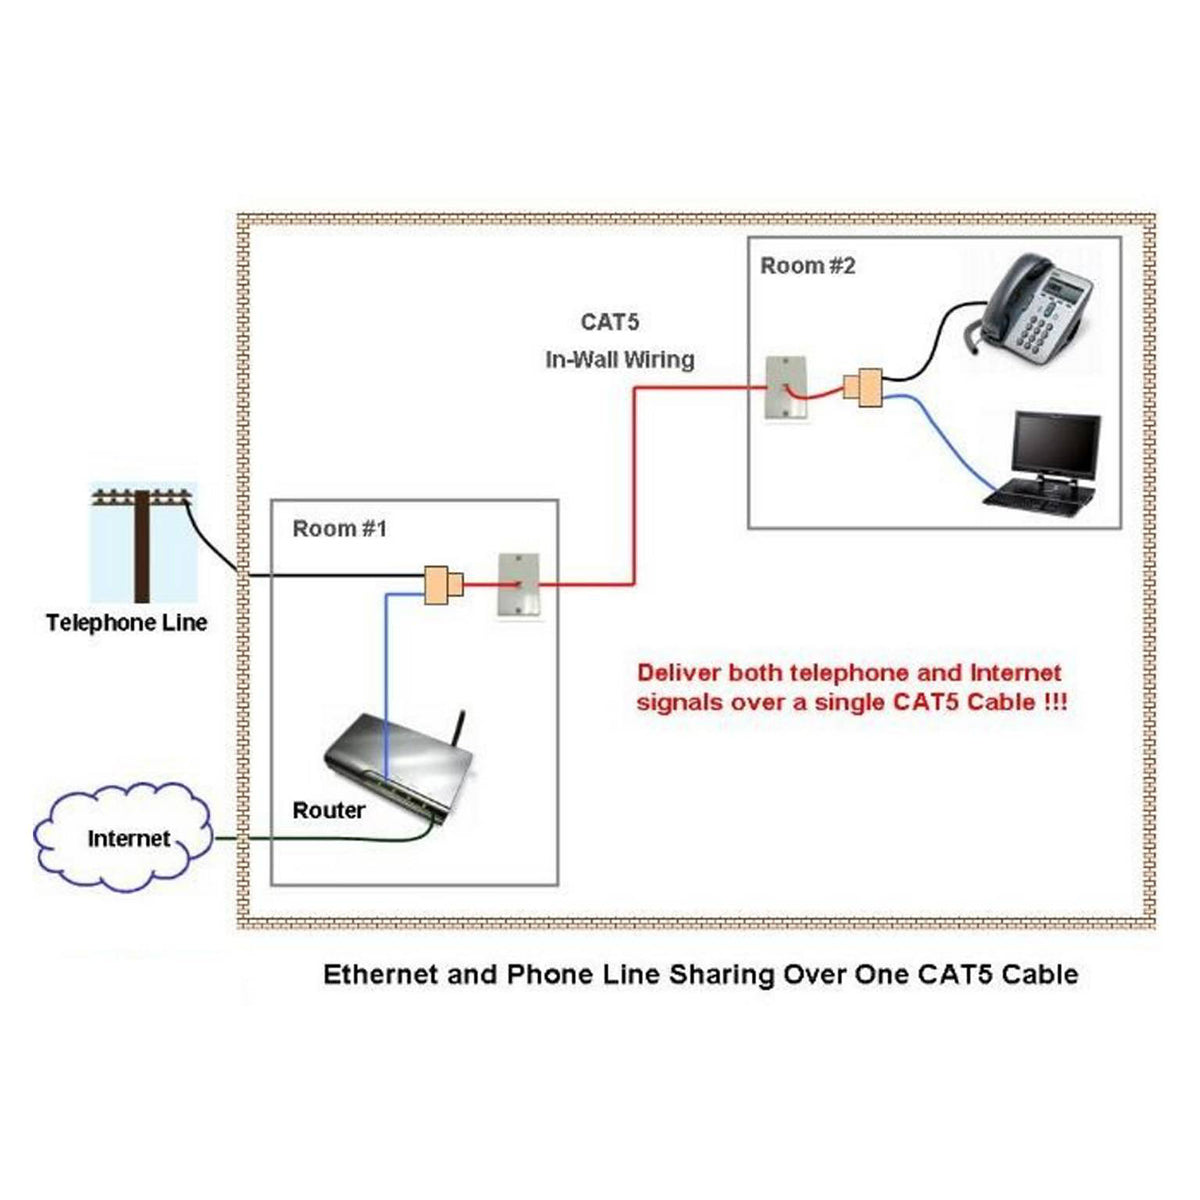 Rj45 Rj11 Splitter Cable Sharing Kit For Ethernet And Phone Lines Cat 5e Wiring Diagram Dualcomm